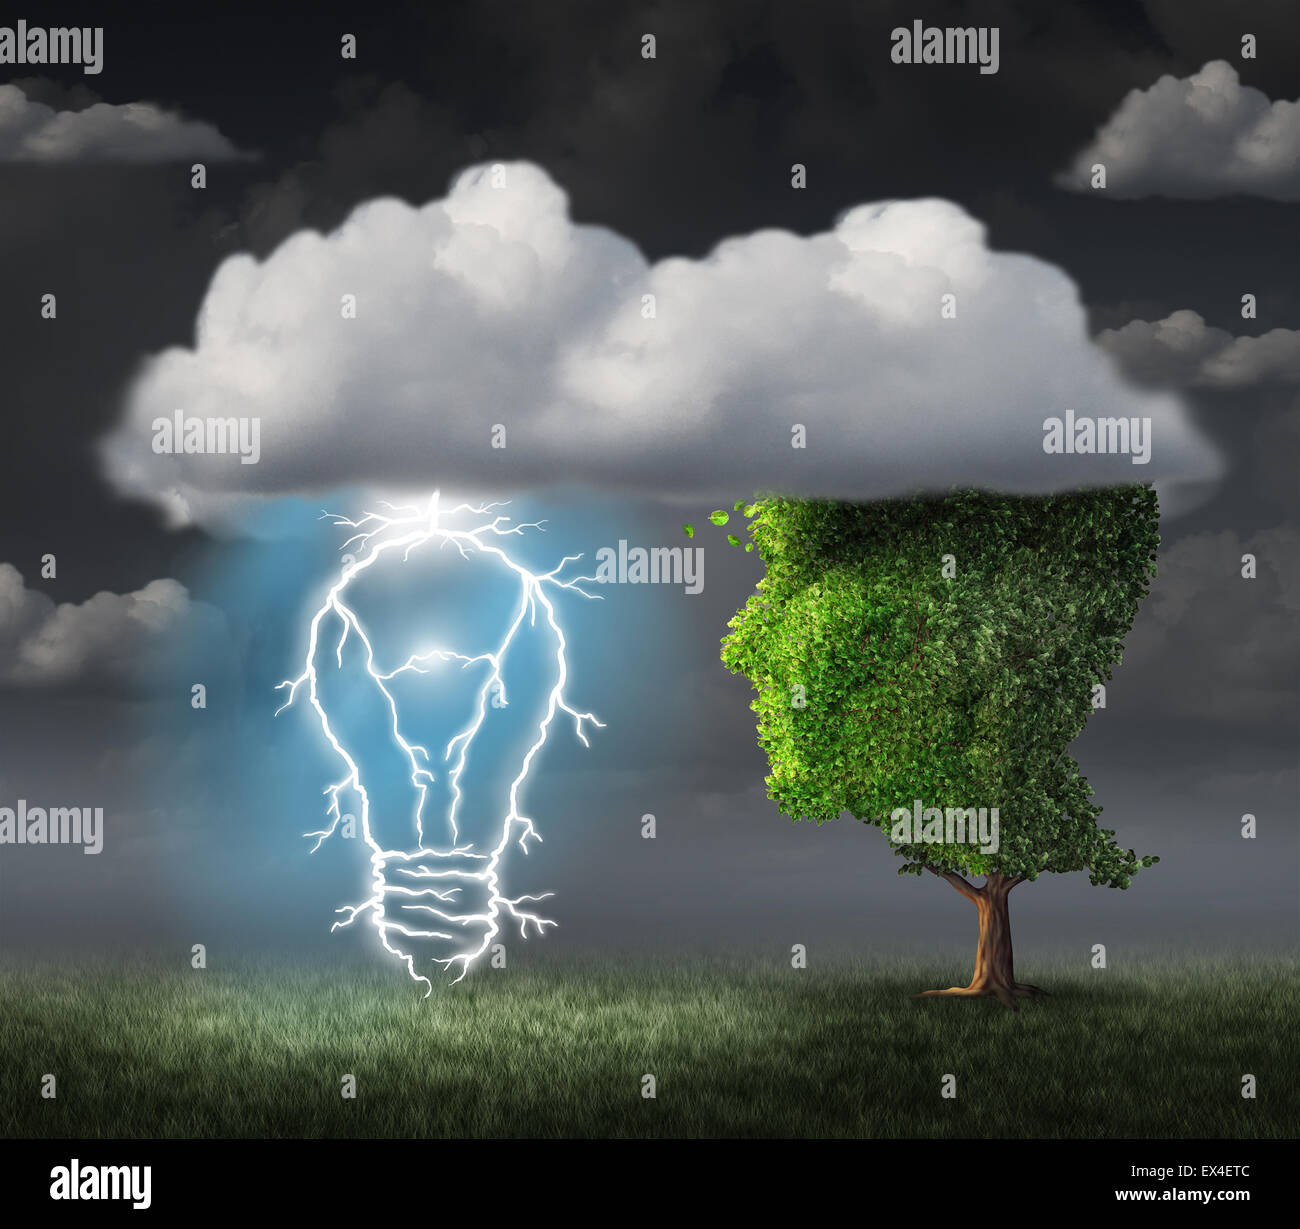 Business idea concept as a tree shaped as a face under a cloud with an electric lightning bolt in the shape of an - Stock Image